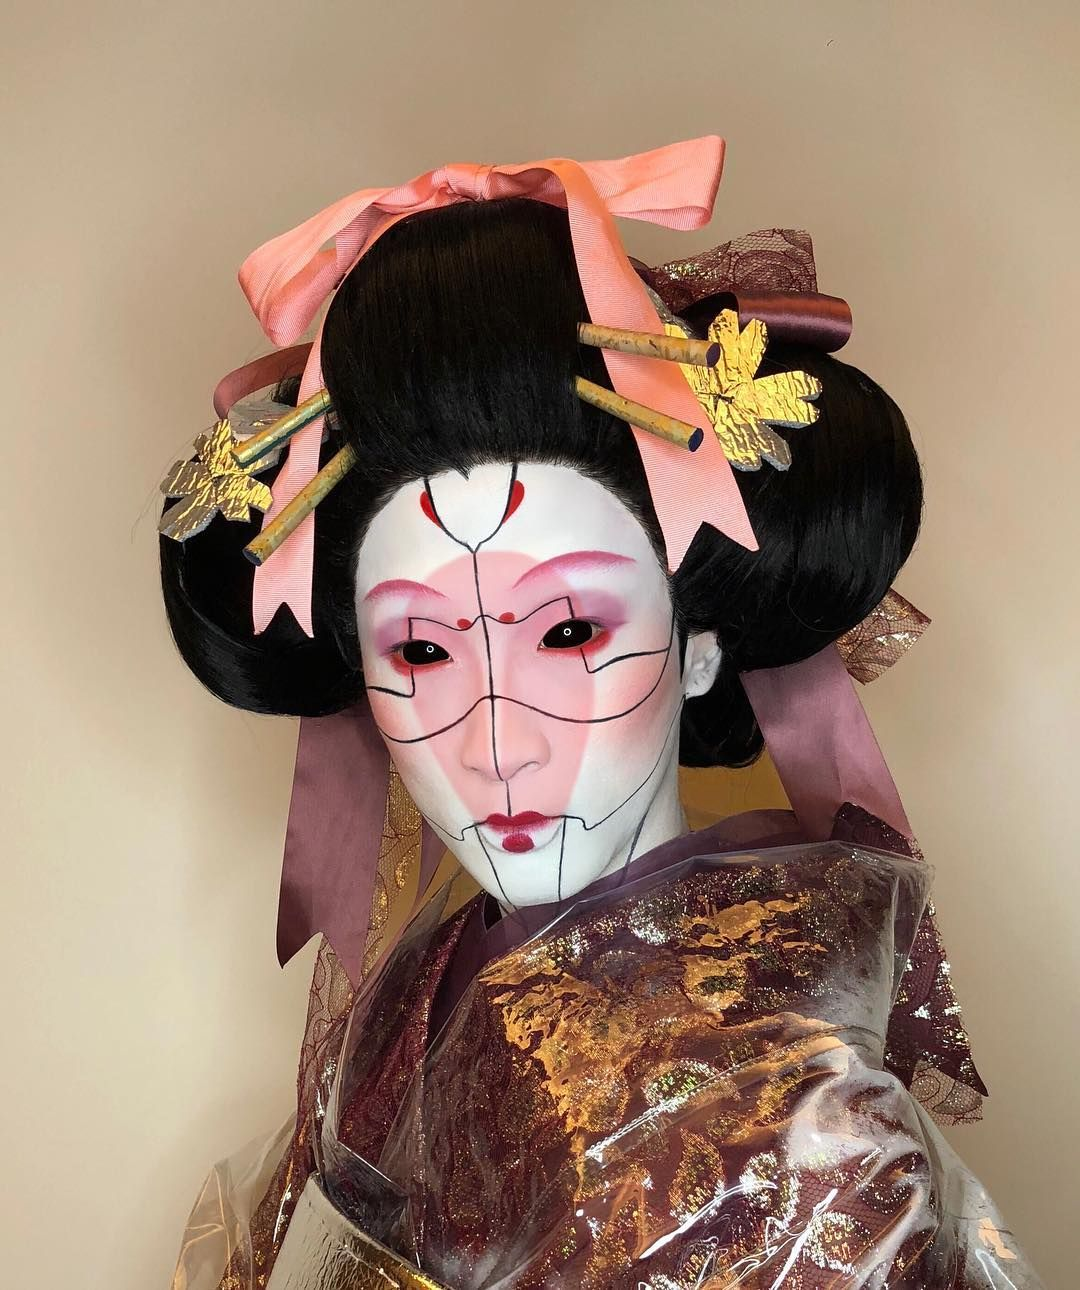 Porcelain Geisha Doll You Can T Afford Inspired By The Robot Geisha In Ghost In The Shell Geisha Mua Makeupartis Ghost In The Shell Geisha Art Geisha Makeup